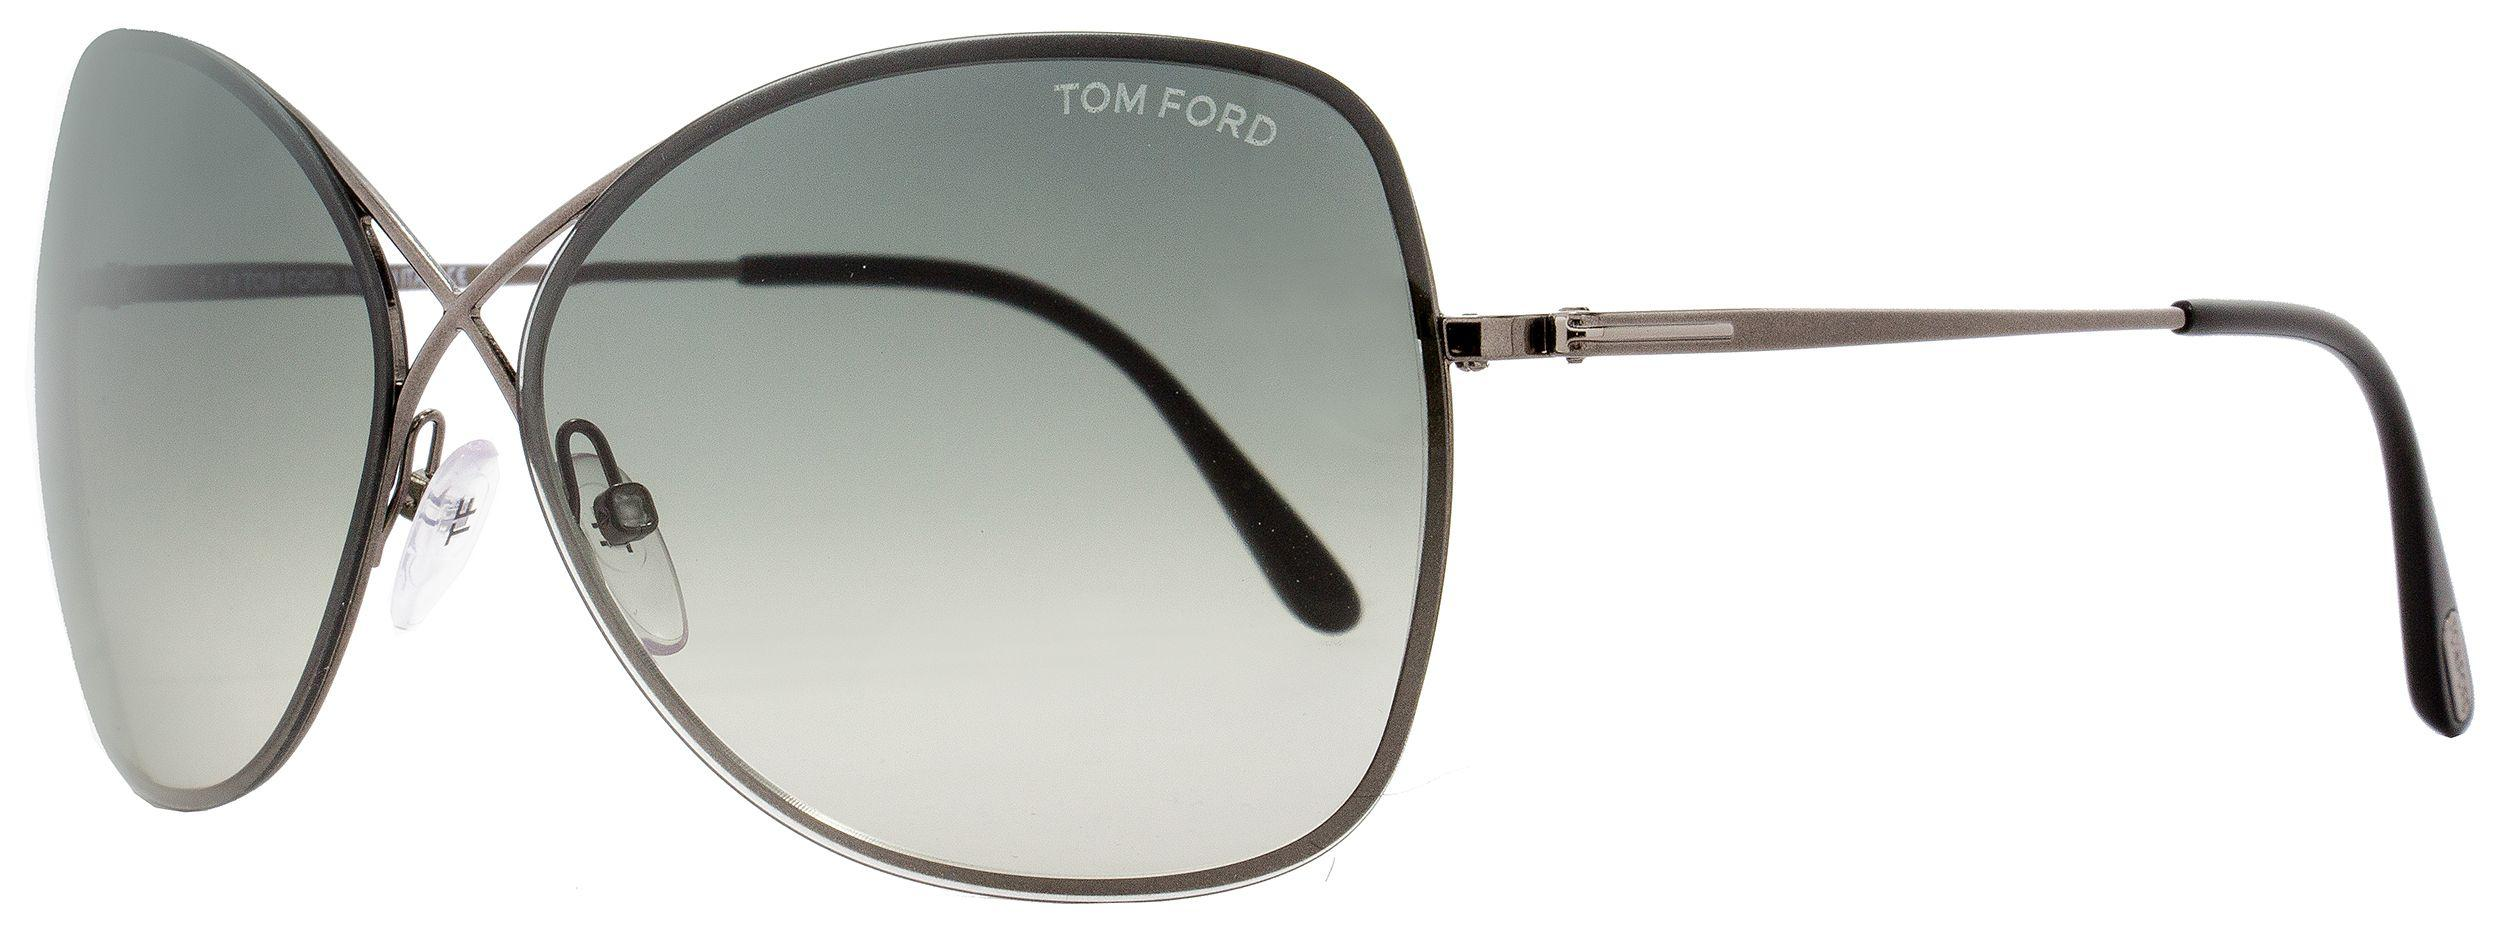 fe0adc0095 Tom Ford Butterfly Sunglasses Tf250 Colette 08c Gunmetal black 63mm ...